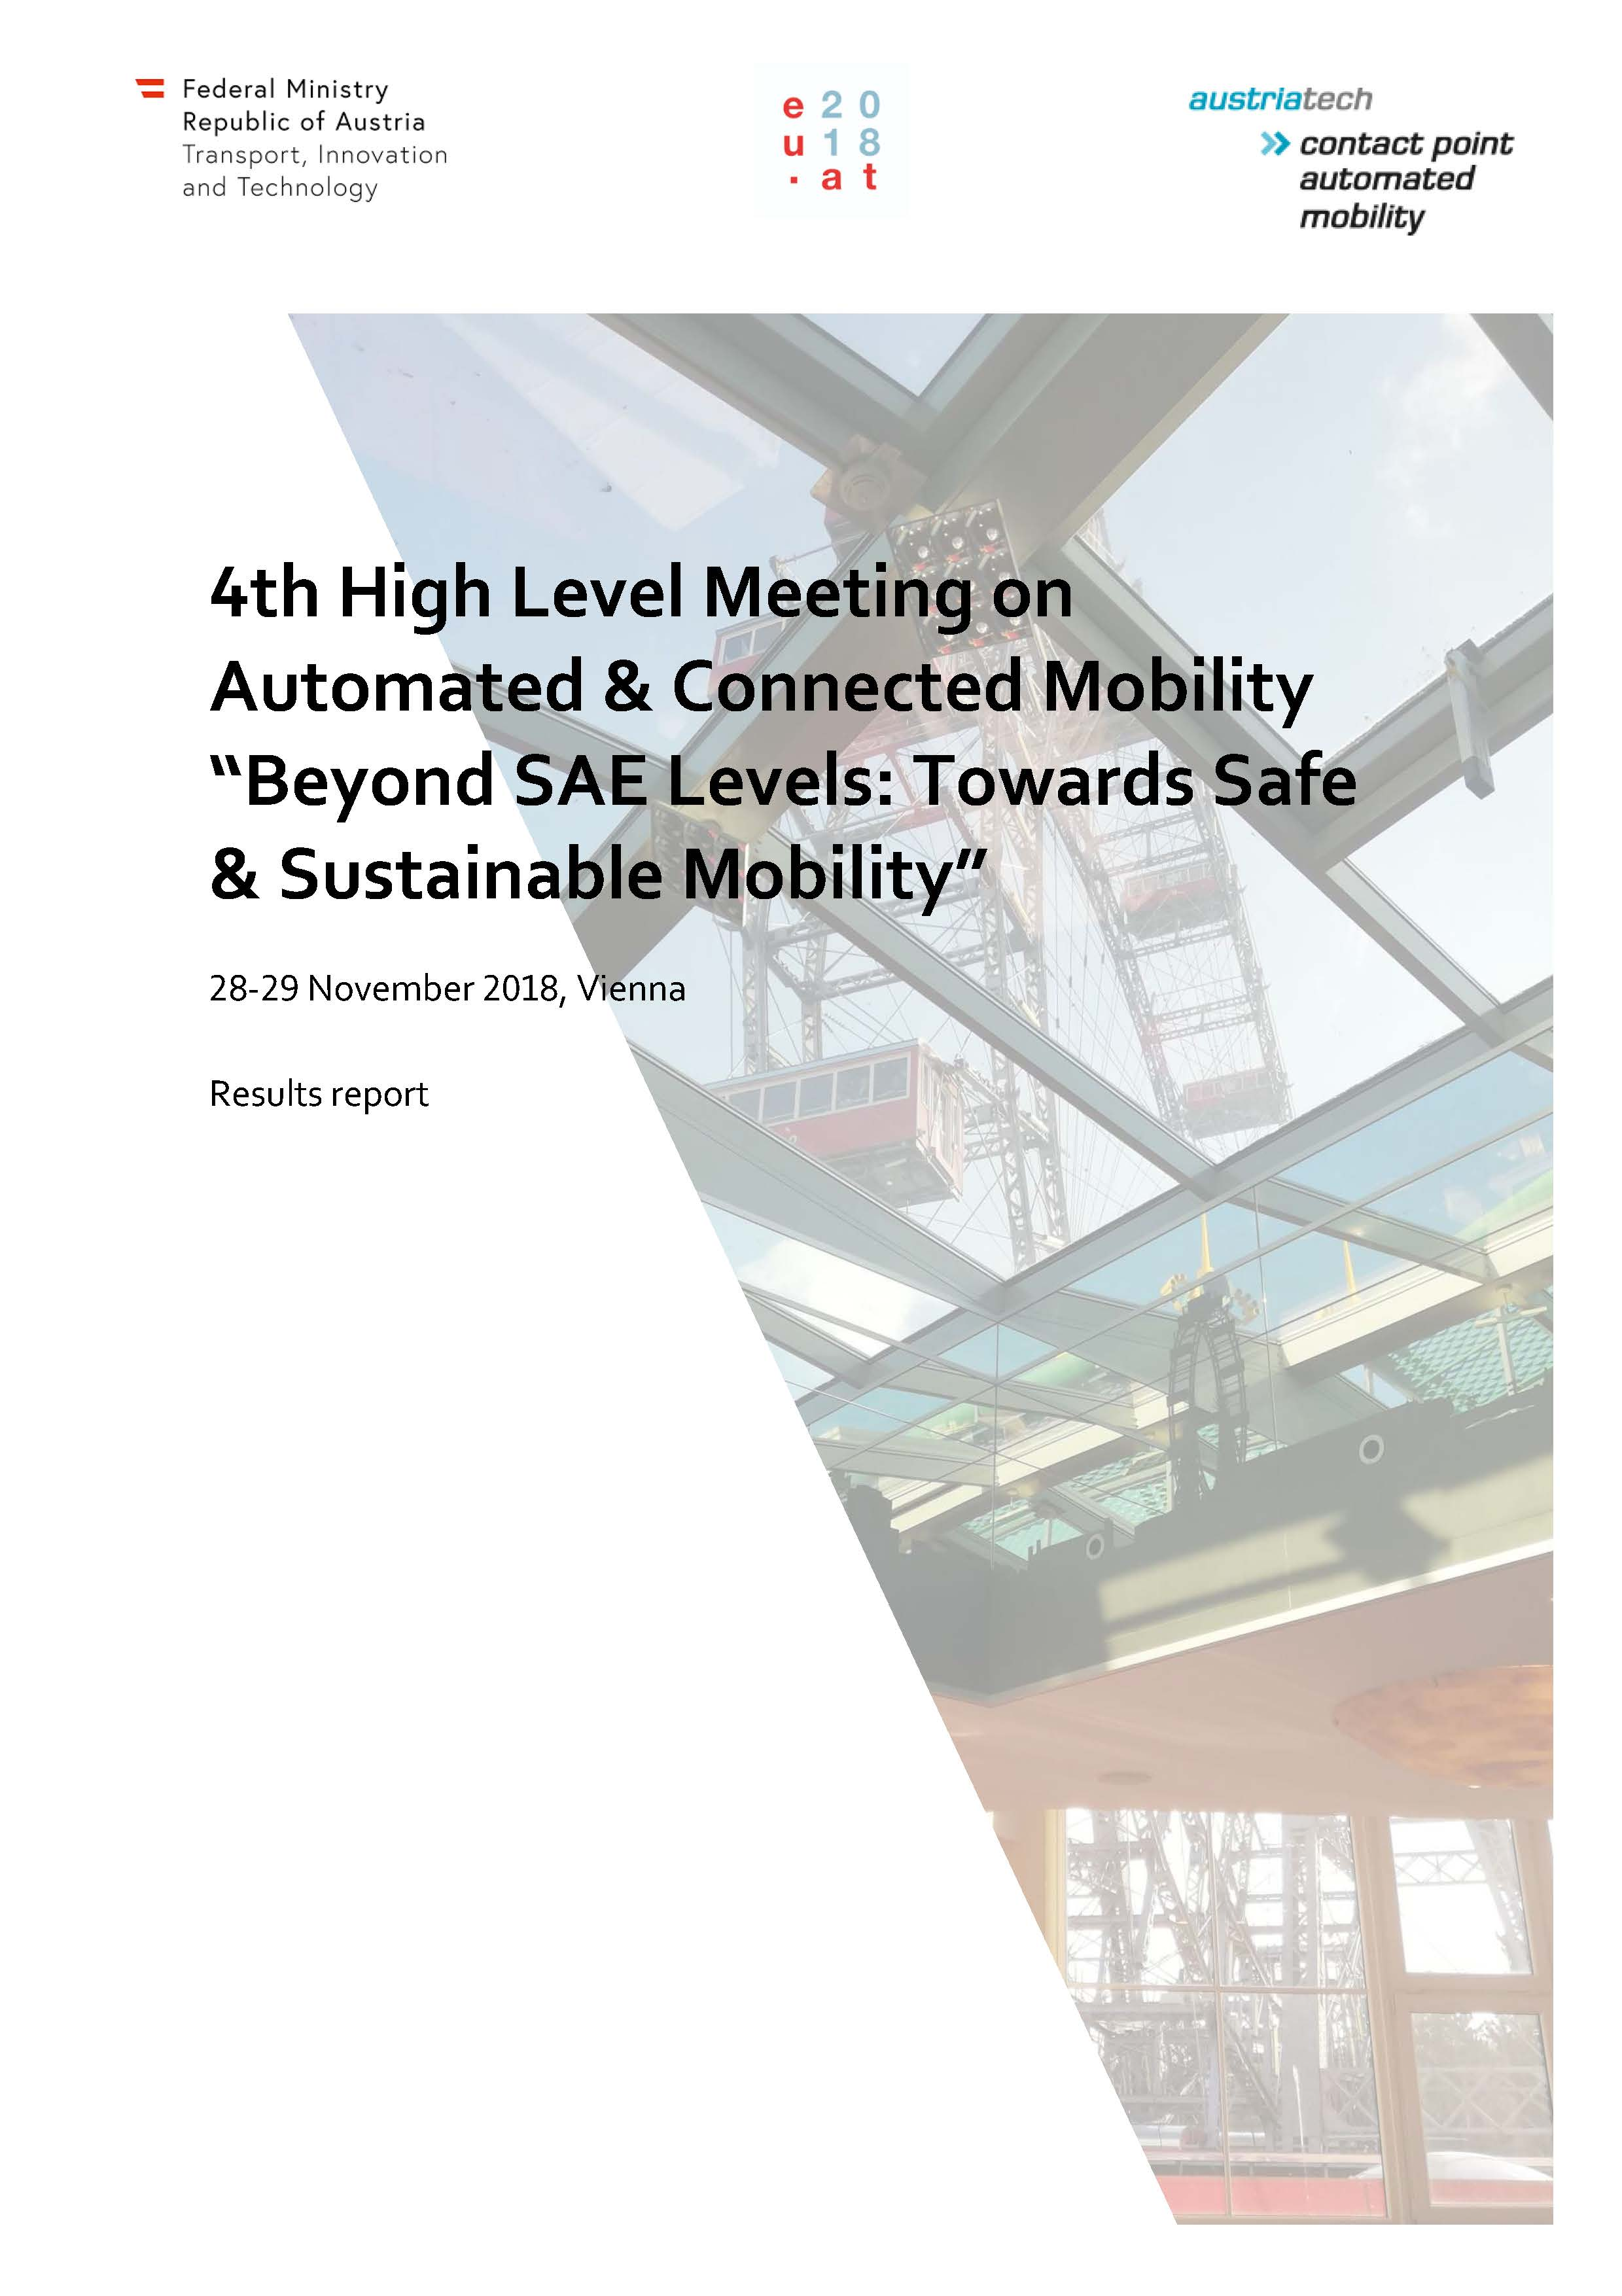 High Level Meeting on Automated and Connected Mobility Report 2019 Seite 01